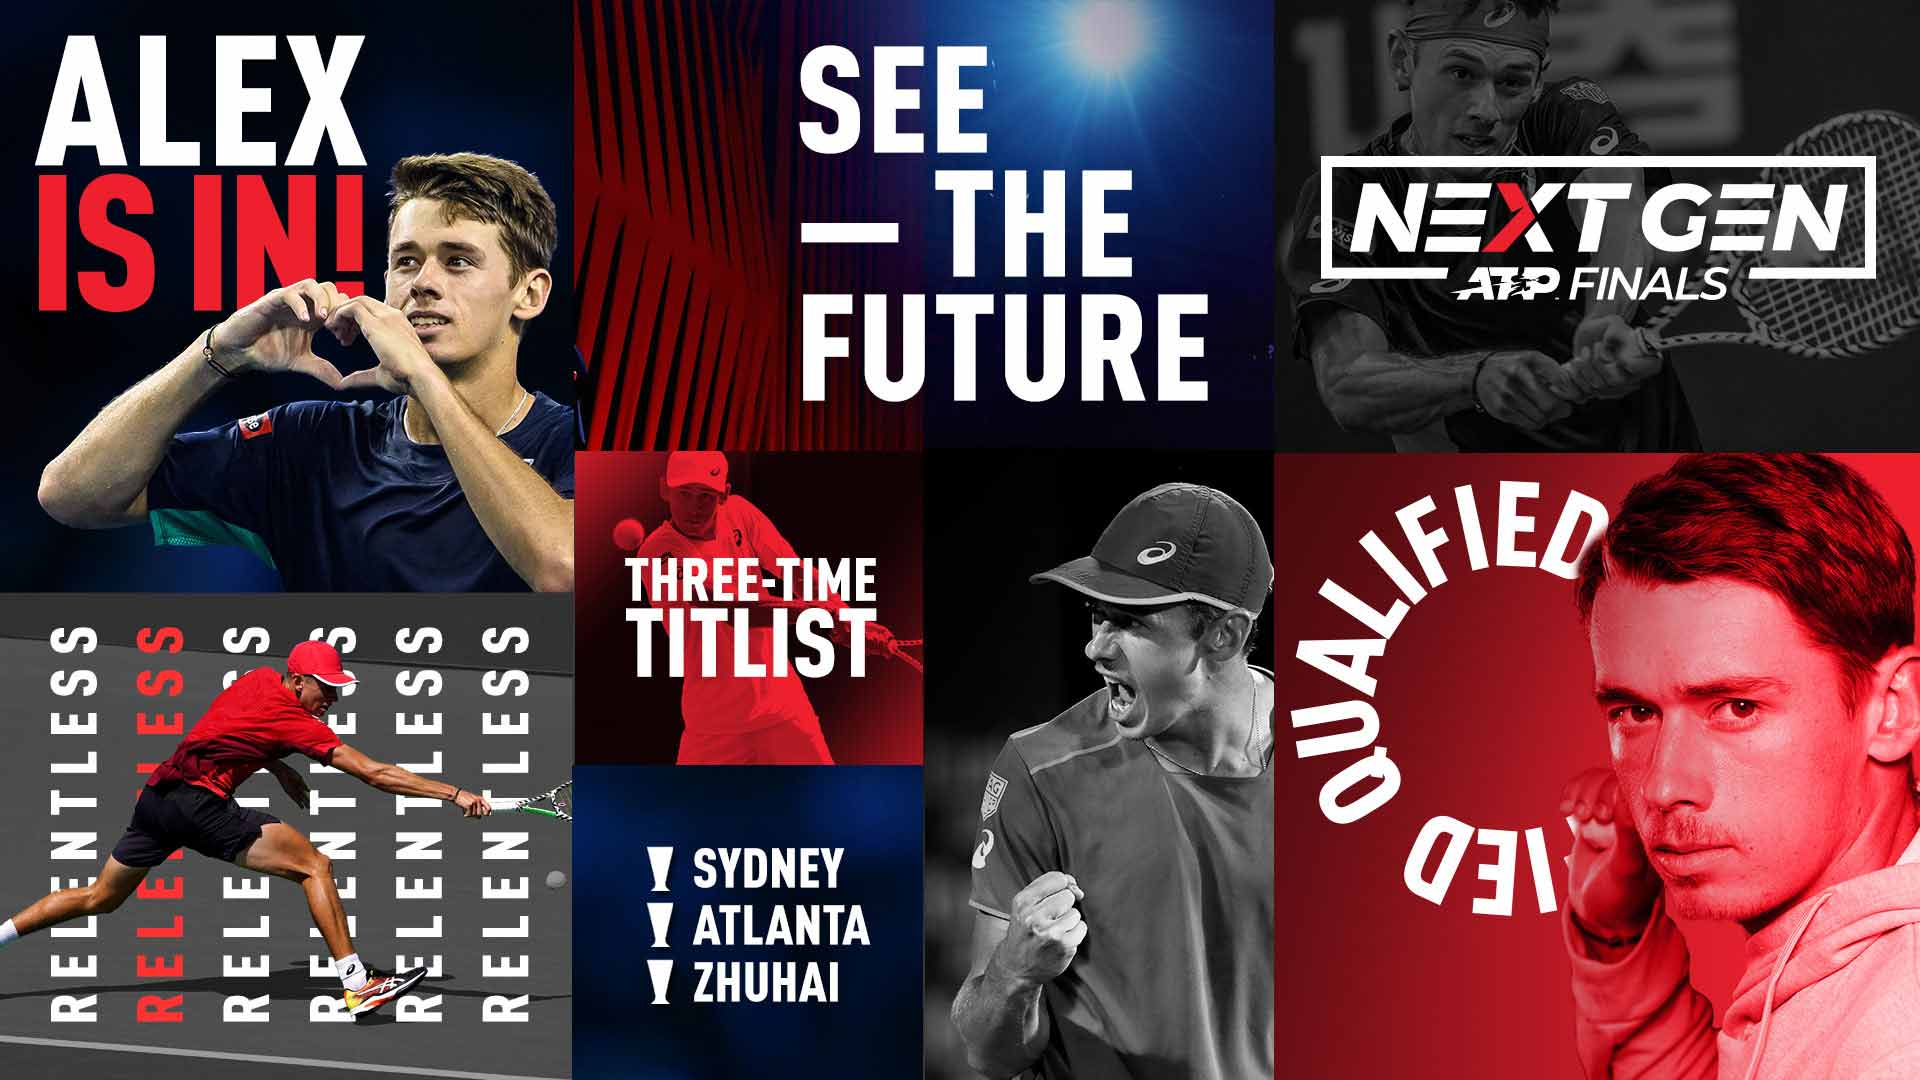 Alex de Minaur qualifies for the 2019 Next Gen ATP Finals in Milan.